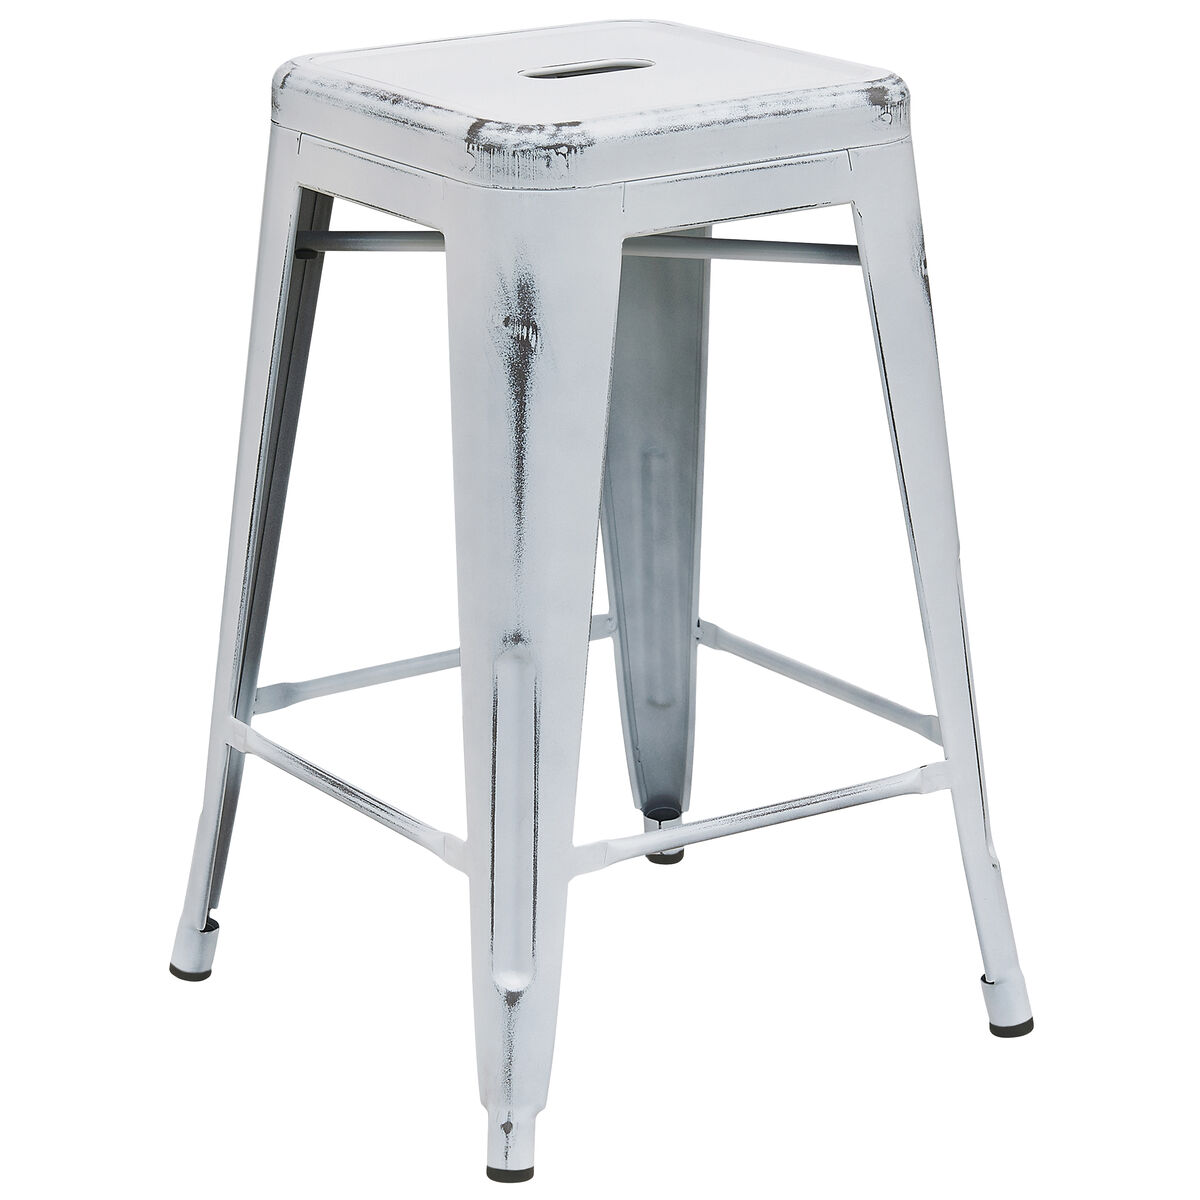 Distressed White Metal Stool Et Bt3503 24 Wh Gg Stackchairs4lesscom